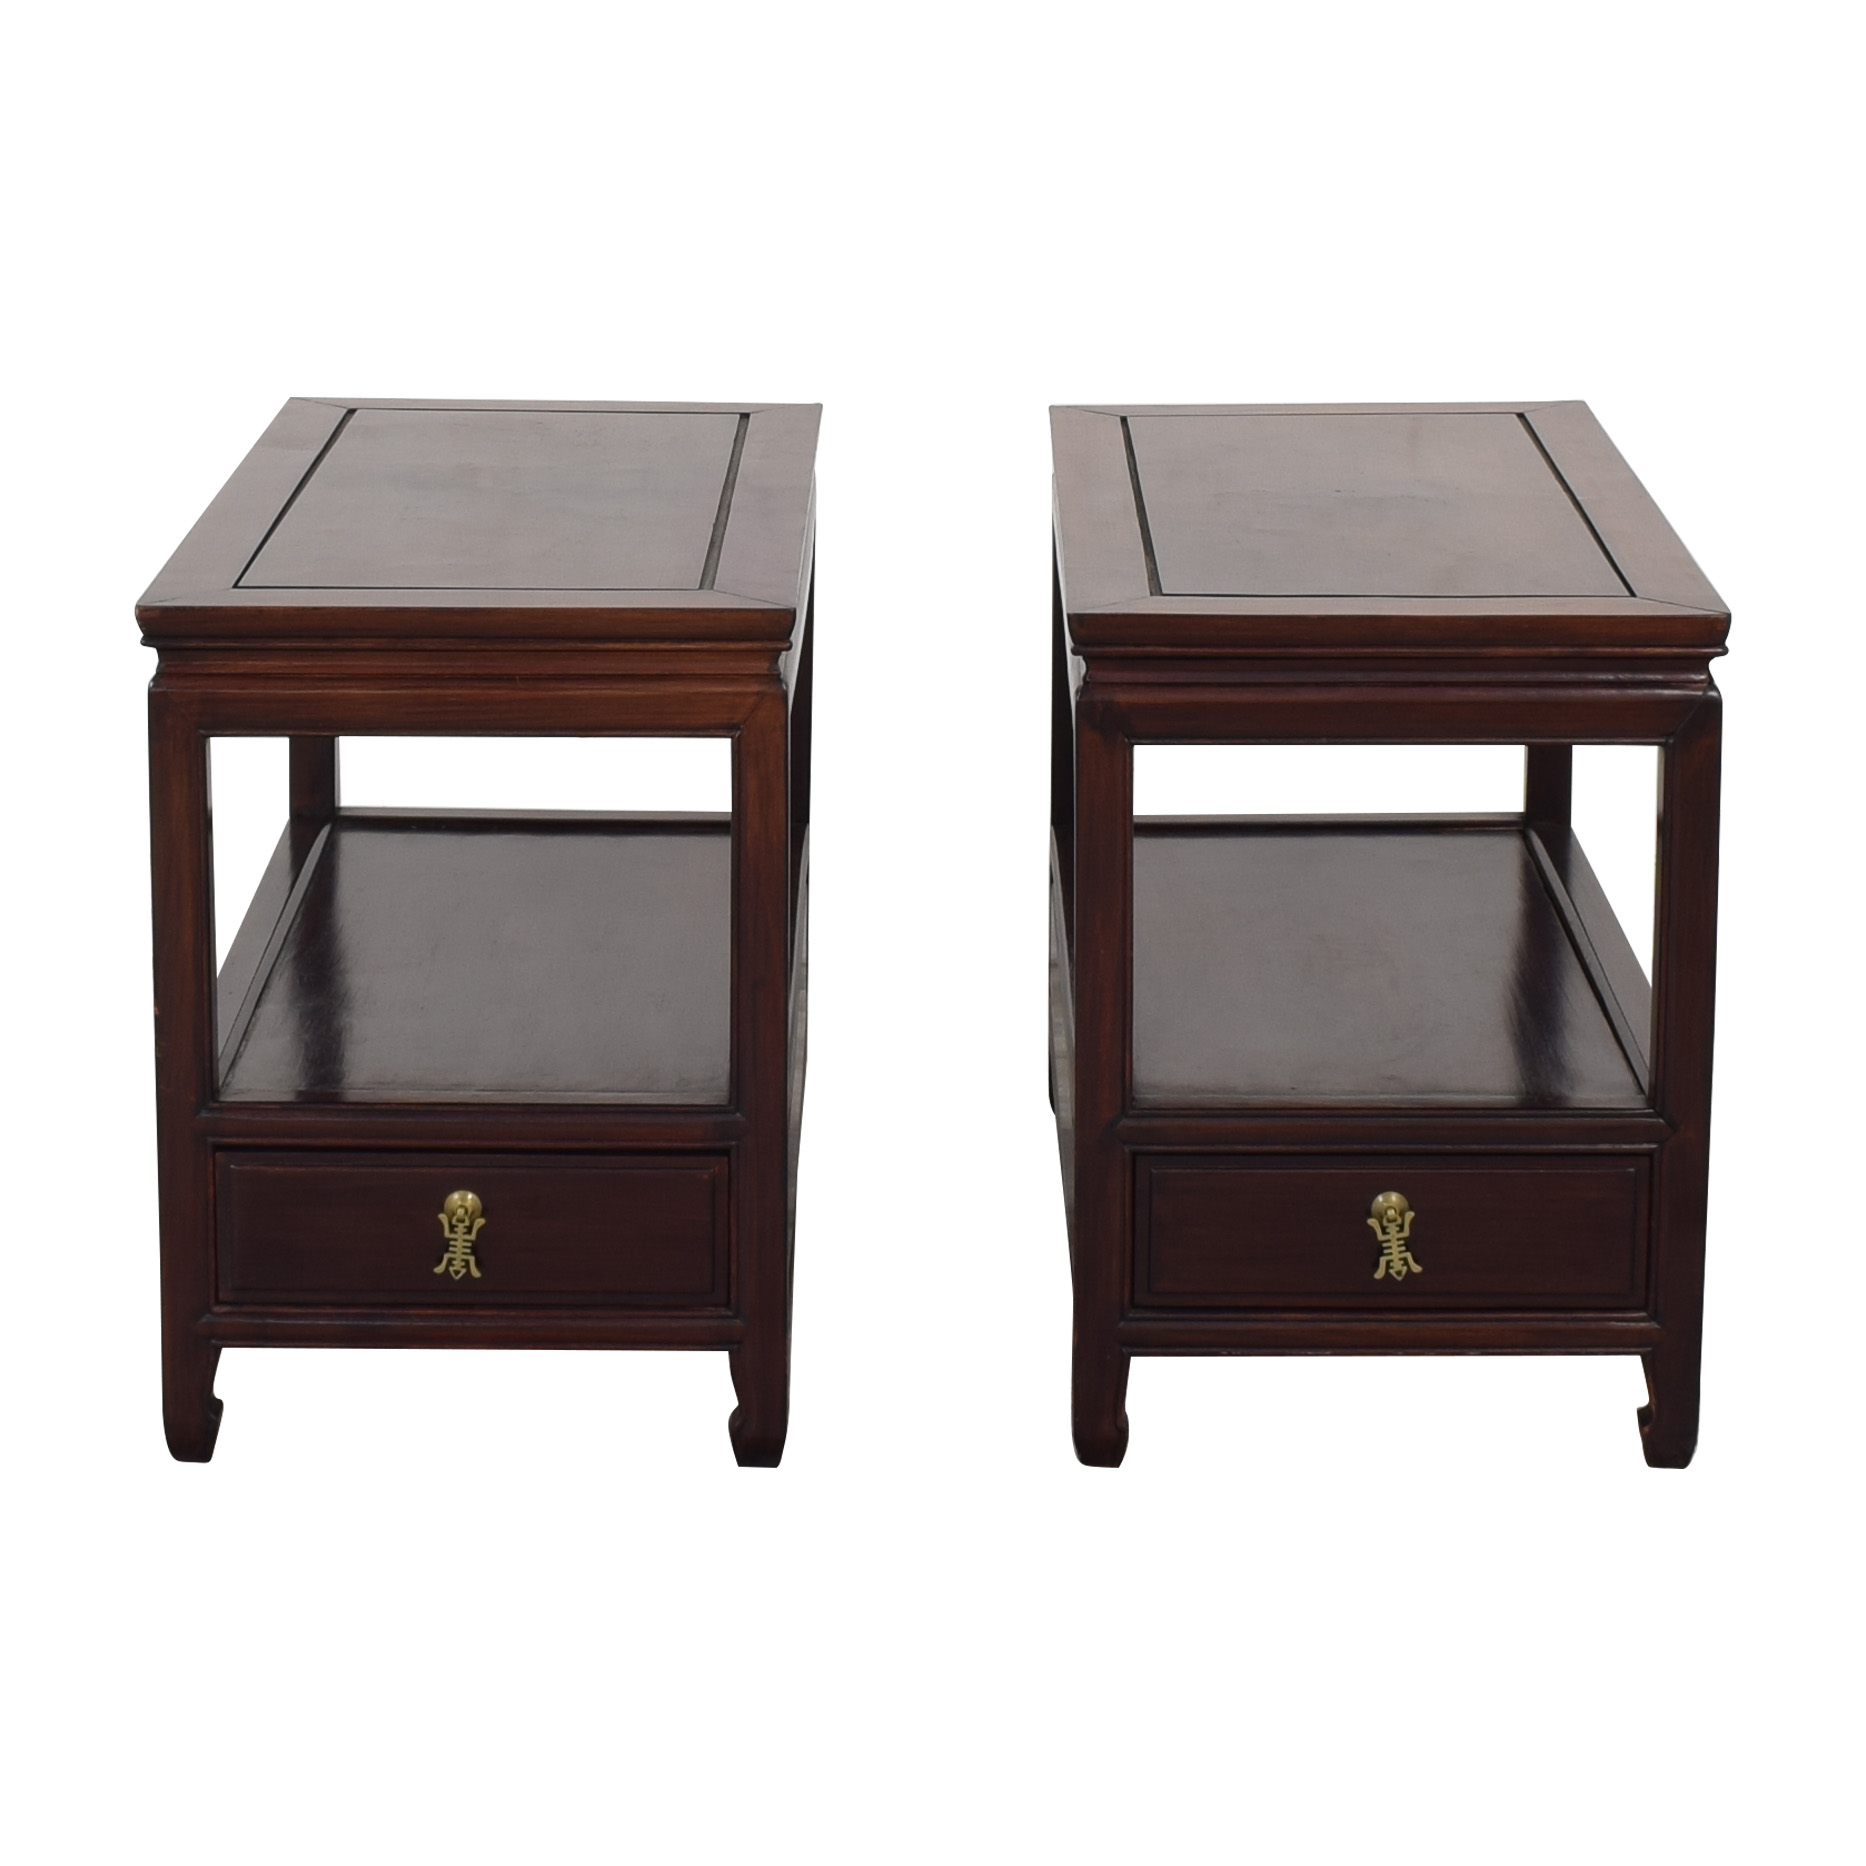 Single Drawer End Tables for sale